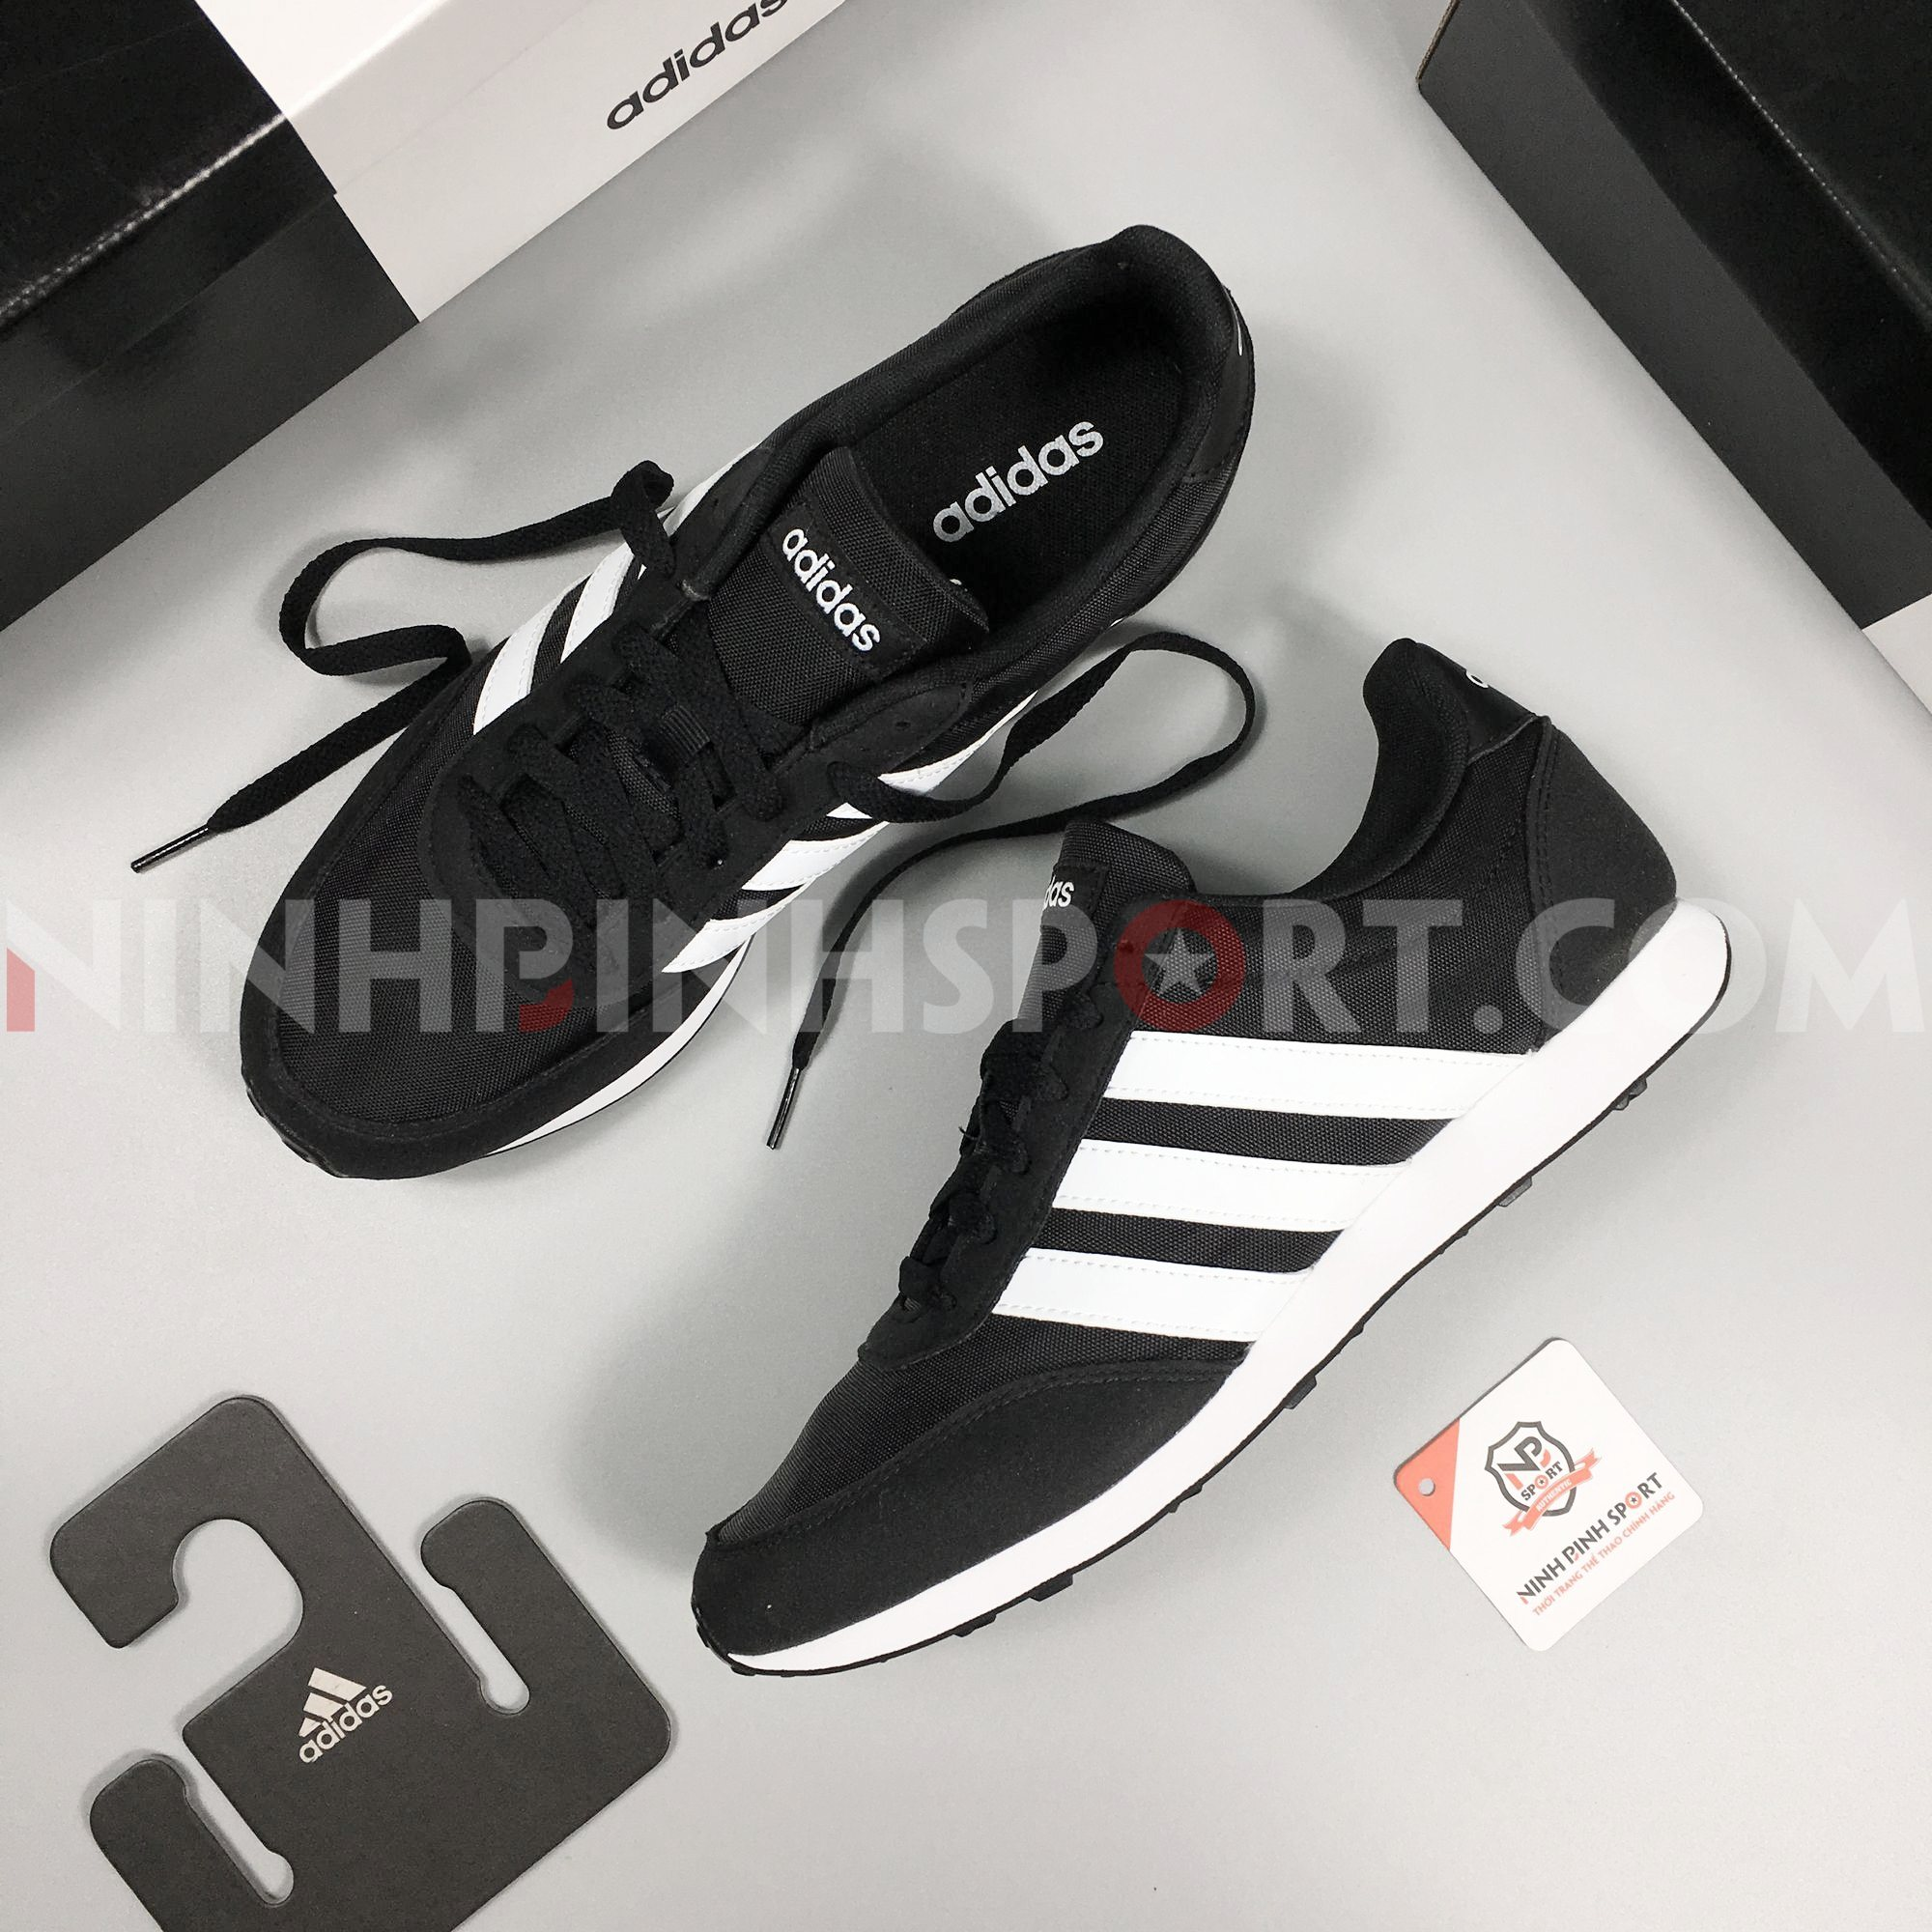 Giầy thể thao nam Adidas Neo V Racer 2.0 Black - EE6405